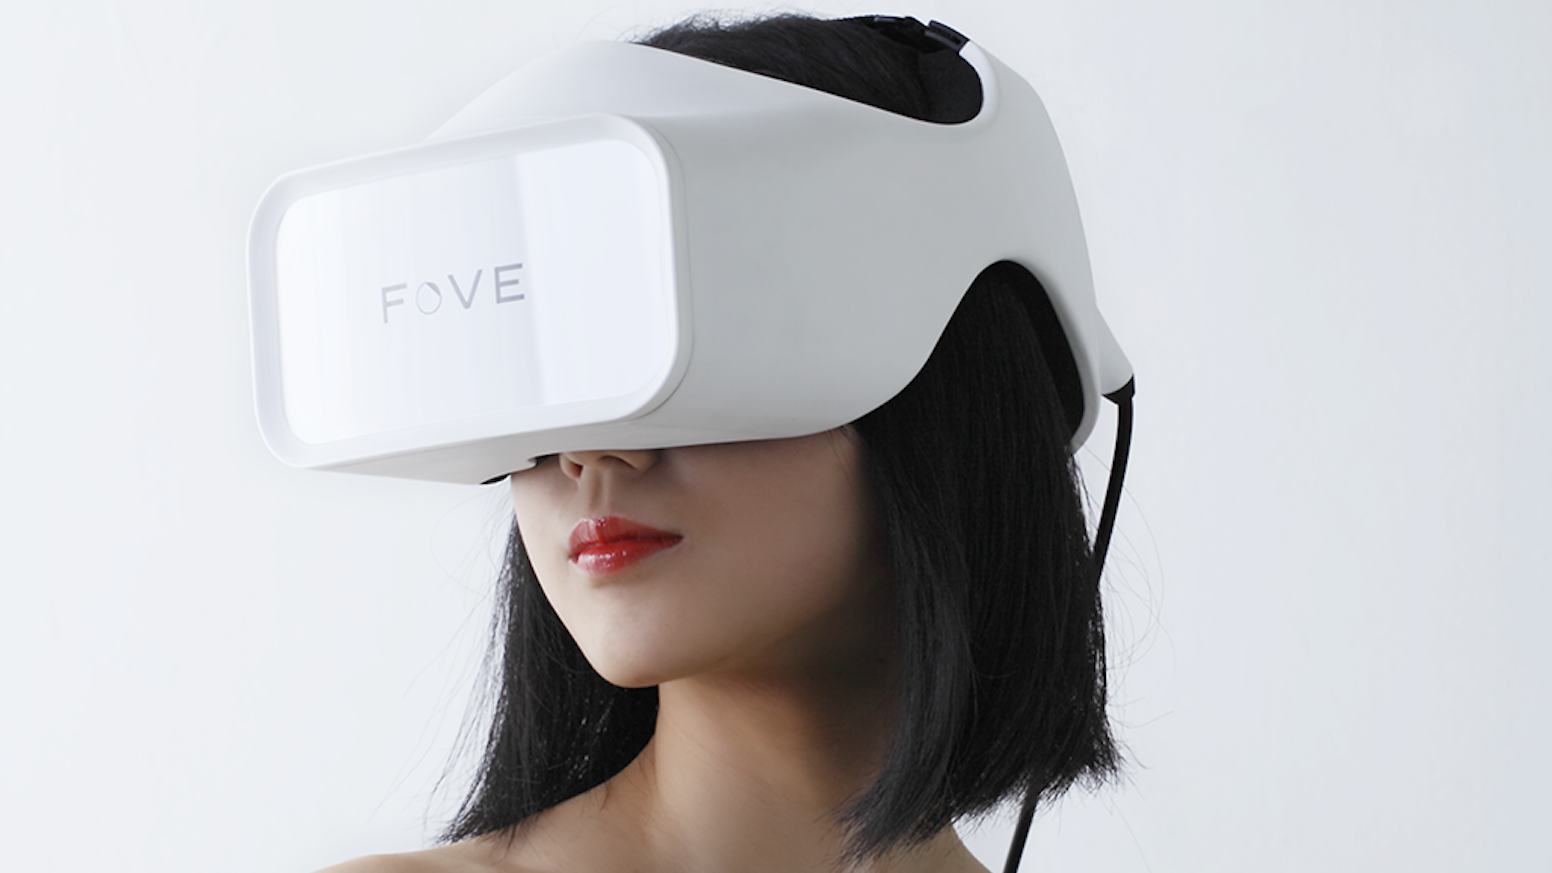 Human connection in a virtual world: FOVE reads subtle eye movements for more precise control in VR. Missed the FOVE campaign? Head over toGetFOVE.comto get yours! Thanks to all of our Kickstarter backers for making our vision happen!